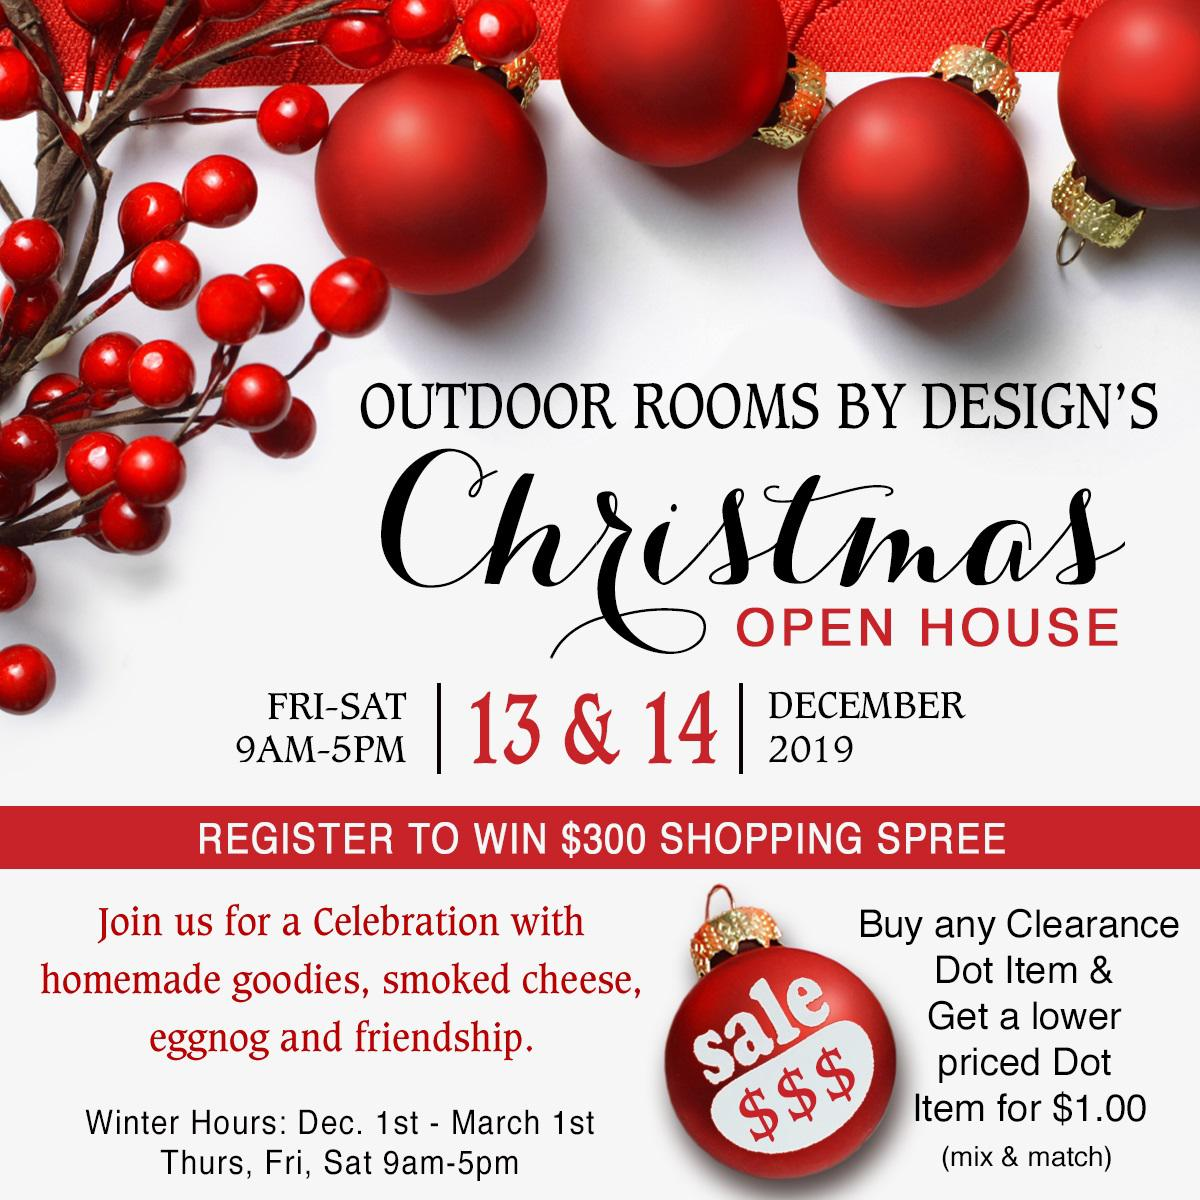 Christmas Open House: Dec 13 & 14. Join us for a Celebration with homemade goodies, smoked cheese, eggnog, and friendship.